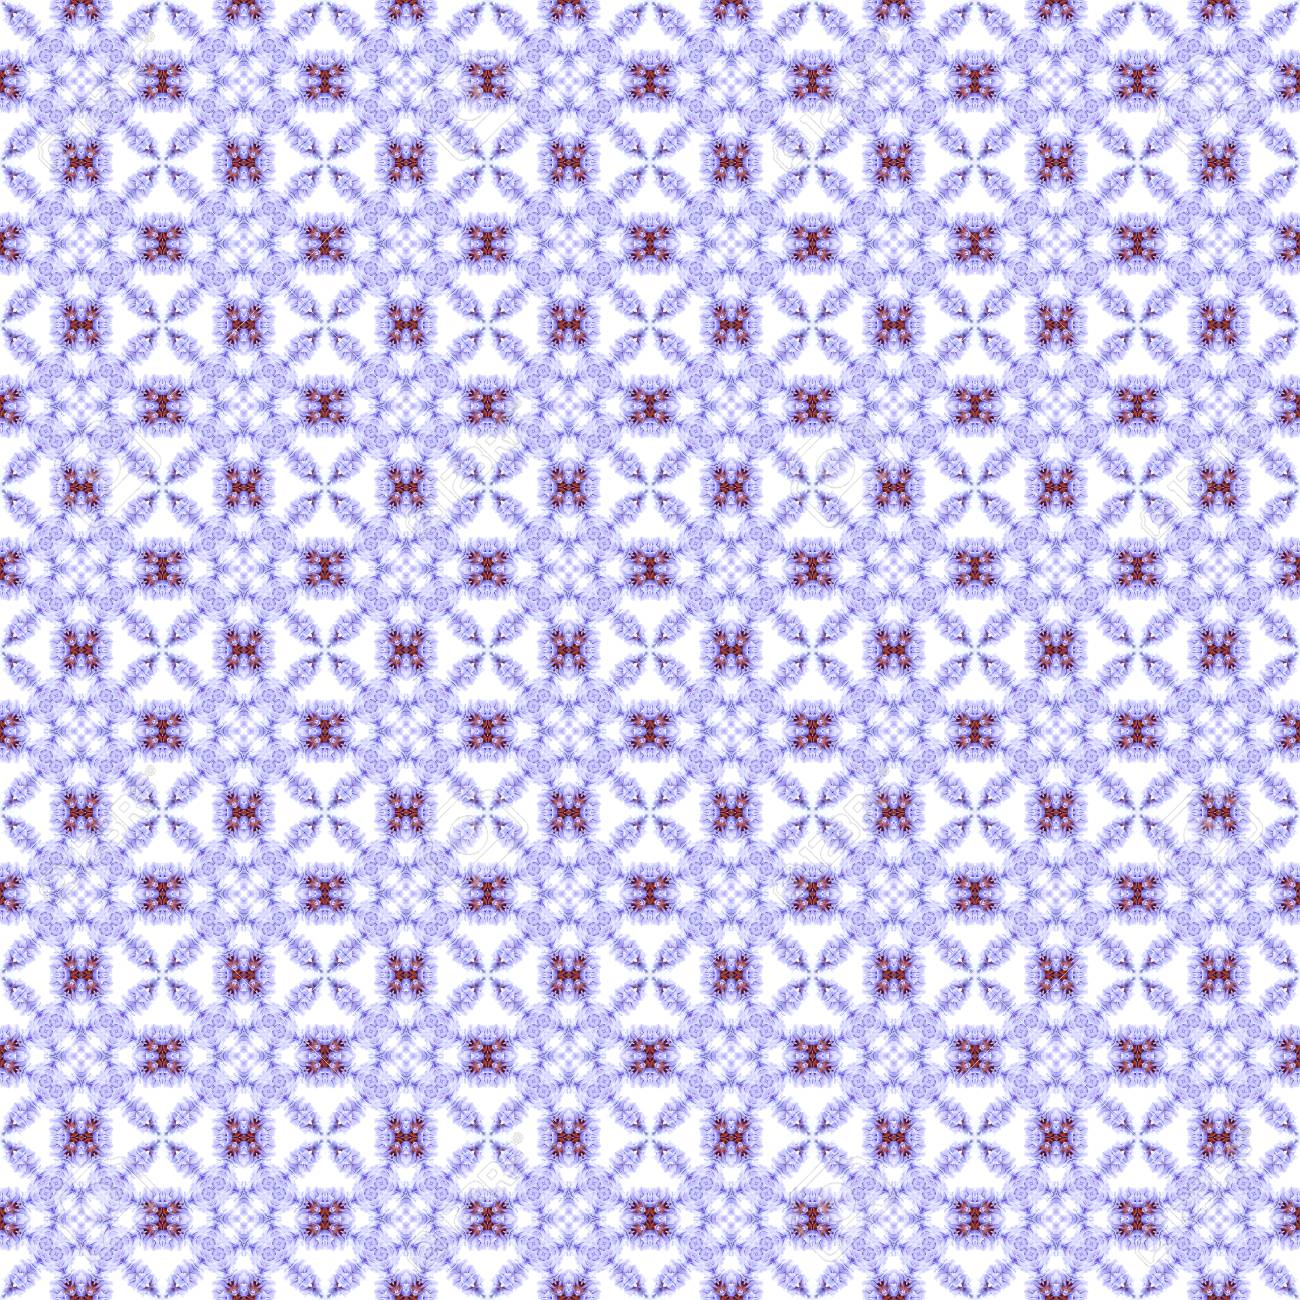 Abstract flowers seamless pattern background. Kaleidoscope from flowers. Hydraulic tile design. - 104074716